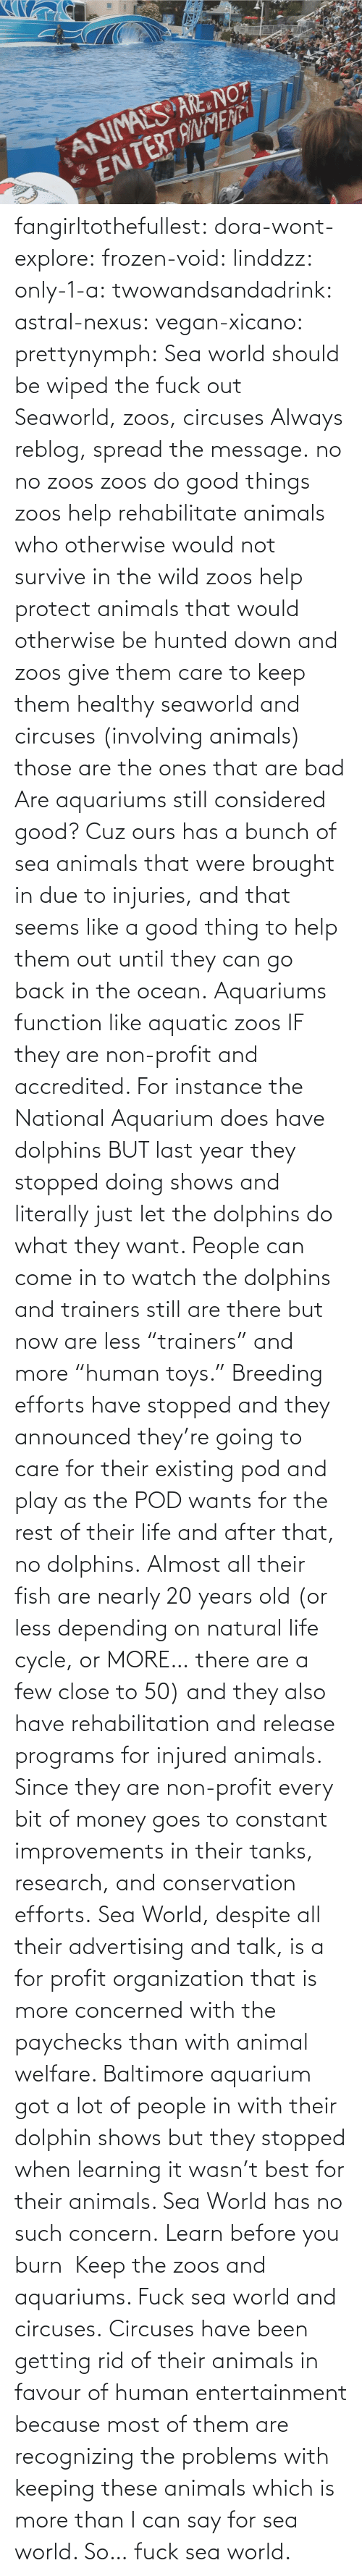 "Wild: fangirltothefullest:  dora-wont-explore:  frozen-void:  linddzz:  only-1-a:  twowandsandadrink:  astral-nexus:  vegan-xicano:  prettynymph:  Sea world should be wiped the fuck out  Seaworld, zoos, circuses  Always reblog, spread the message.  no no zoos zoos do good things zoos help rehabilitate animals who otherwise would not survive in the wild zoos help protect animals that would otherwise be hunted down and zoos give them care to keep them healthy seaworld and circuses (involving animals) those are the ones that are bad  Are aquariums still considered good? Cuz ours has a bunch of sea animals that were brought in due to injuries, and that seems like a good thing to help them out until they can go back in the ocean.  Aquariums function like aquatic zoos IF they are non-profit and accredited. For instance the National Aquarium does have dolphins BUT last year they stopped doing shows and literally just let the dolphins do what they want. People can come in to watch the dolphins and trainers still are there but now are less ""trainers"" and more ""human toys."" Breeding efforts have stopped and they announced they're going to care for their existing pod and play as the POD wants for the rest of their life and after that, no dolphins. Almost all their fish are nearly 20 years old (or less depending on natural life cycle, or MORE… there are a few close to 50) and they also have rehabilitation and release programs for injured animals. Since they are non-profit every bit of money goes to constant improvements in their tanks, research, and conservation efforts. Sea World, despite all their advertising and talk, is a for profit organization that is more concerned with the paychecks than with animal welfare. Baltimore aquarium got a lot of people in with their dolphin shows but they stopped when learning it wasn't best for their animals. Sea World has no such concern.  Learn before you burn   Keep the zoos and aquariums. Fuck sea world and circuses.  Circuses have been getting rid of  their animals in favour of human entertainment because most of them are recognizing the problems with keeping these animals which is more than I can say for sea world. So… fuck sea world."